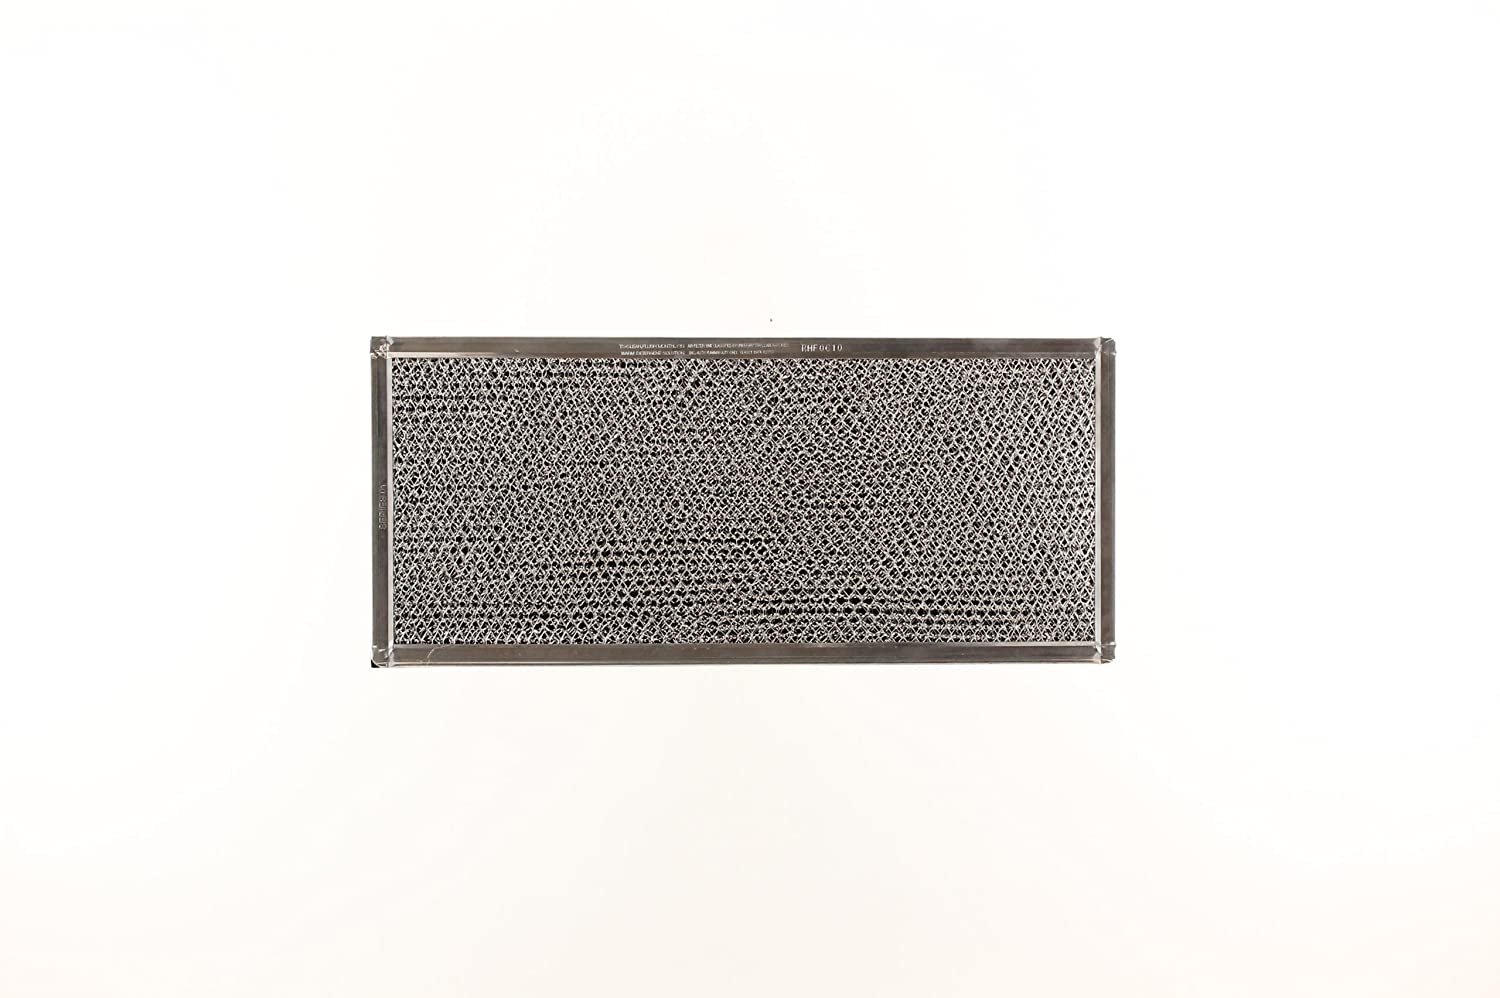 American Metal Filter AMRHF0610 Washable OEM Grease Filter for Broan, Jenn Air and Whirlpool